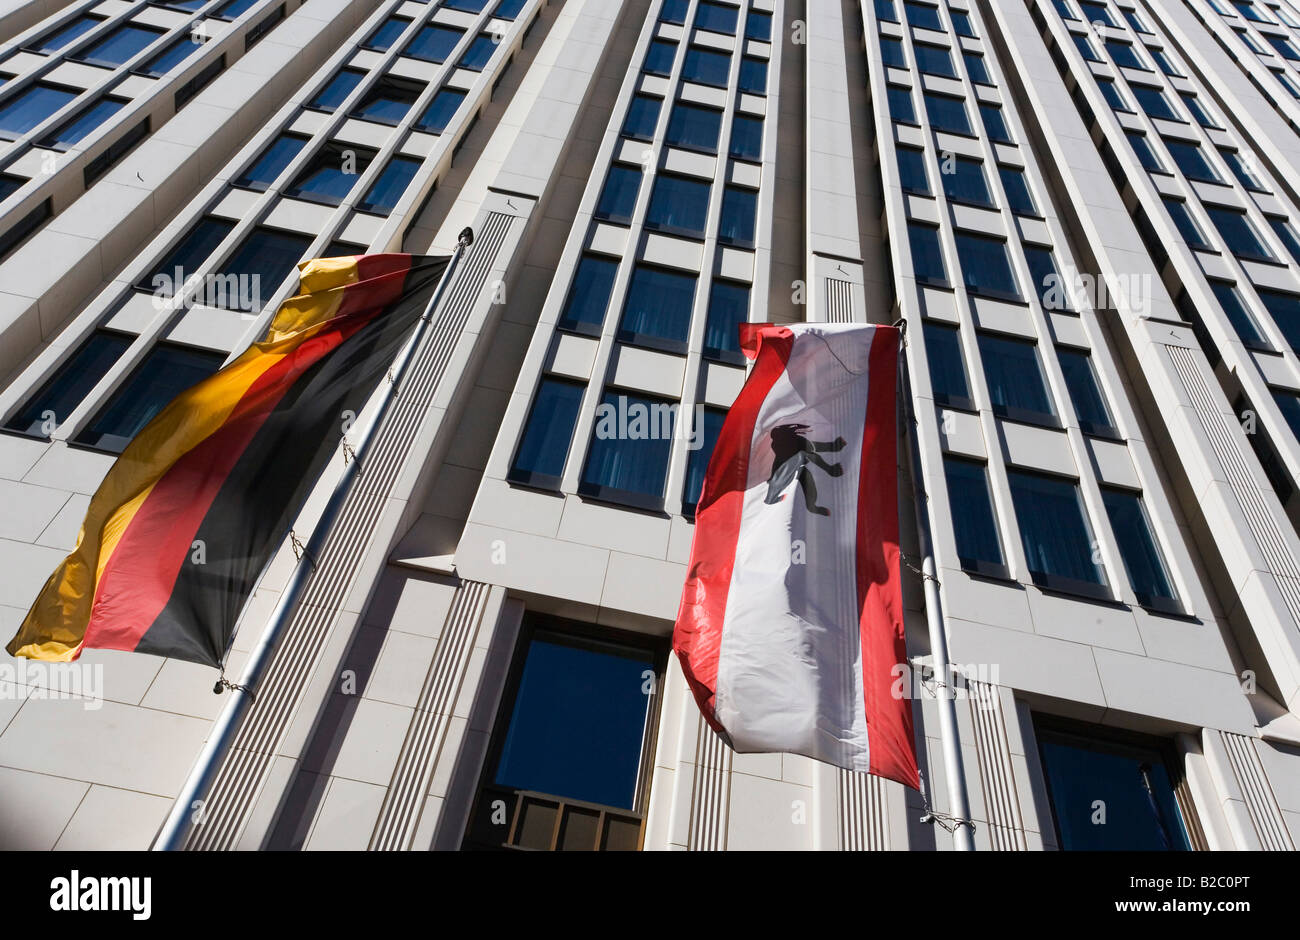 Banners of Germany and Berlin hanging in front of the Beisheim Center on Potsdam Square in Berlin-Mitte, Berlin, - Stock Image